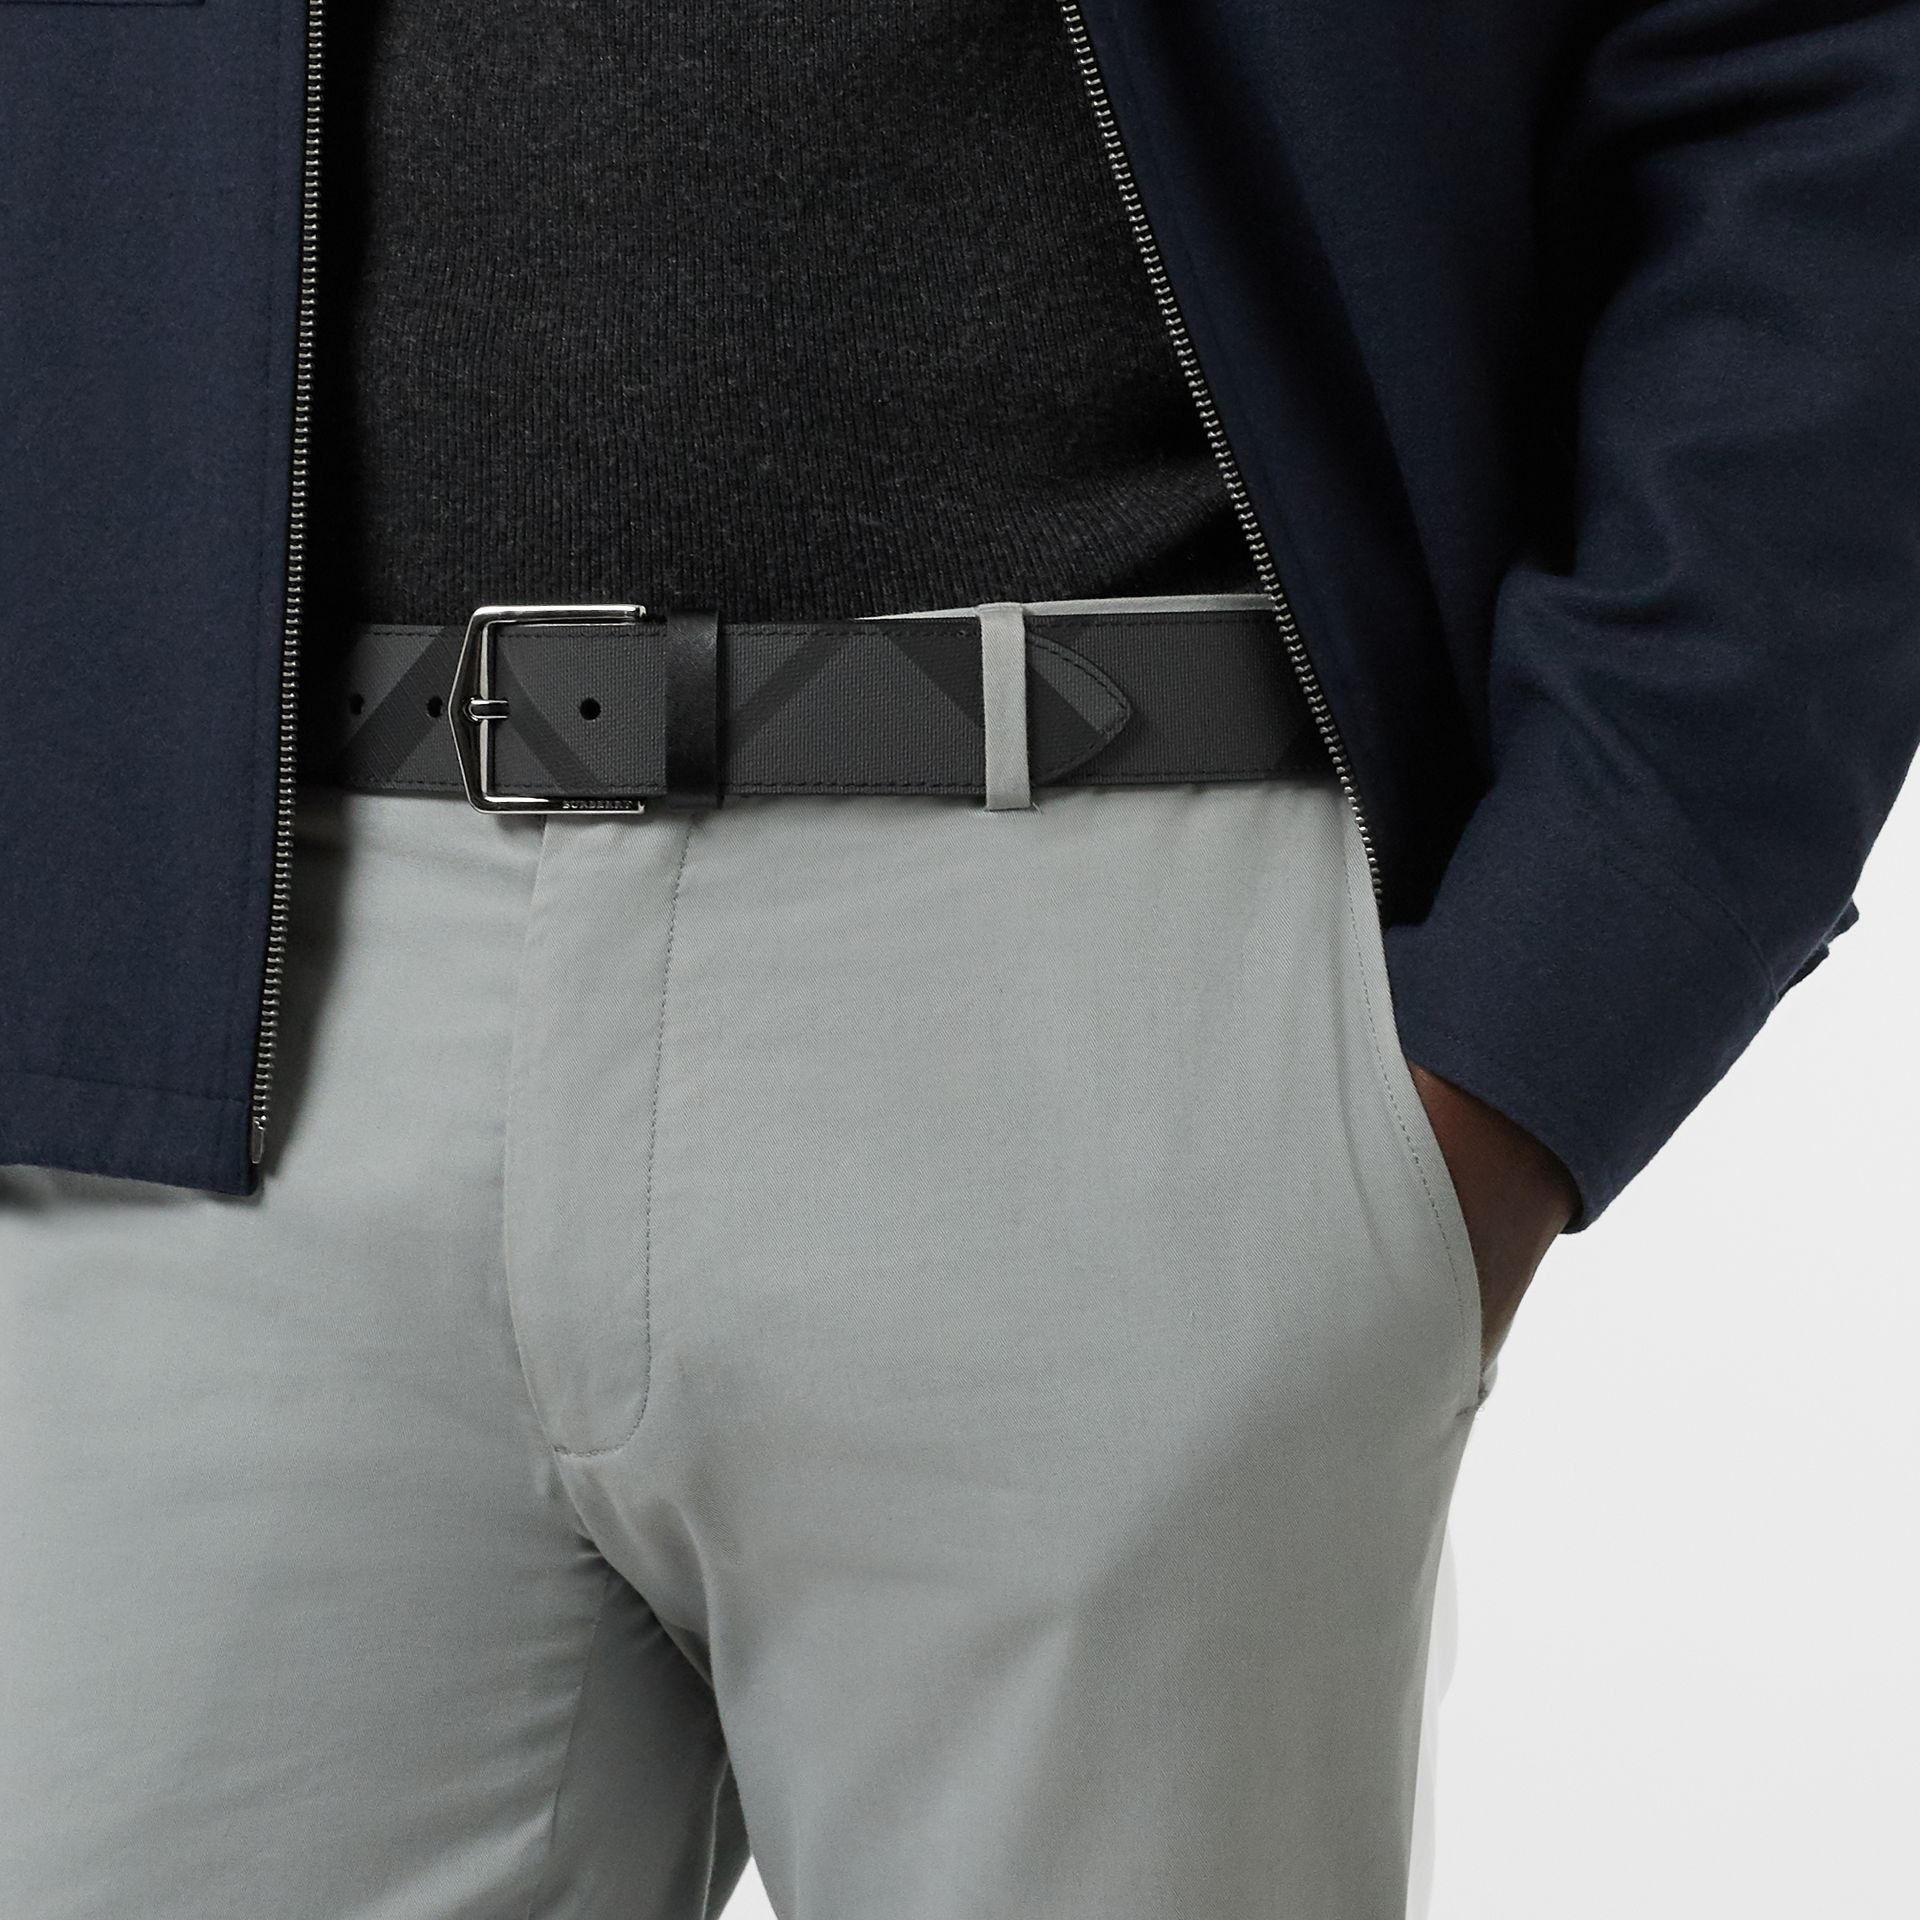 London Check Belt in Charcoal/black - Men | Burberry Australia - gallery image 2